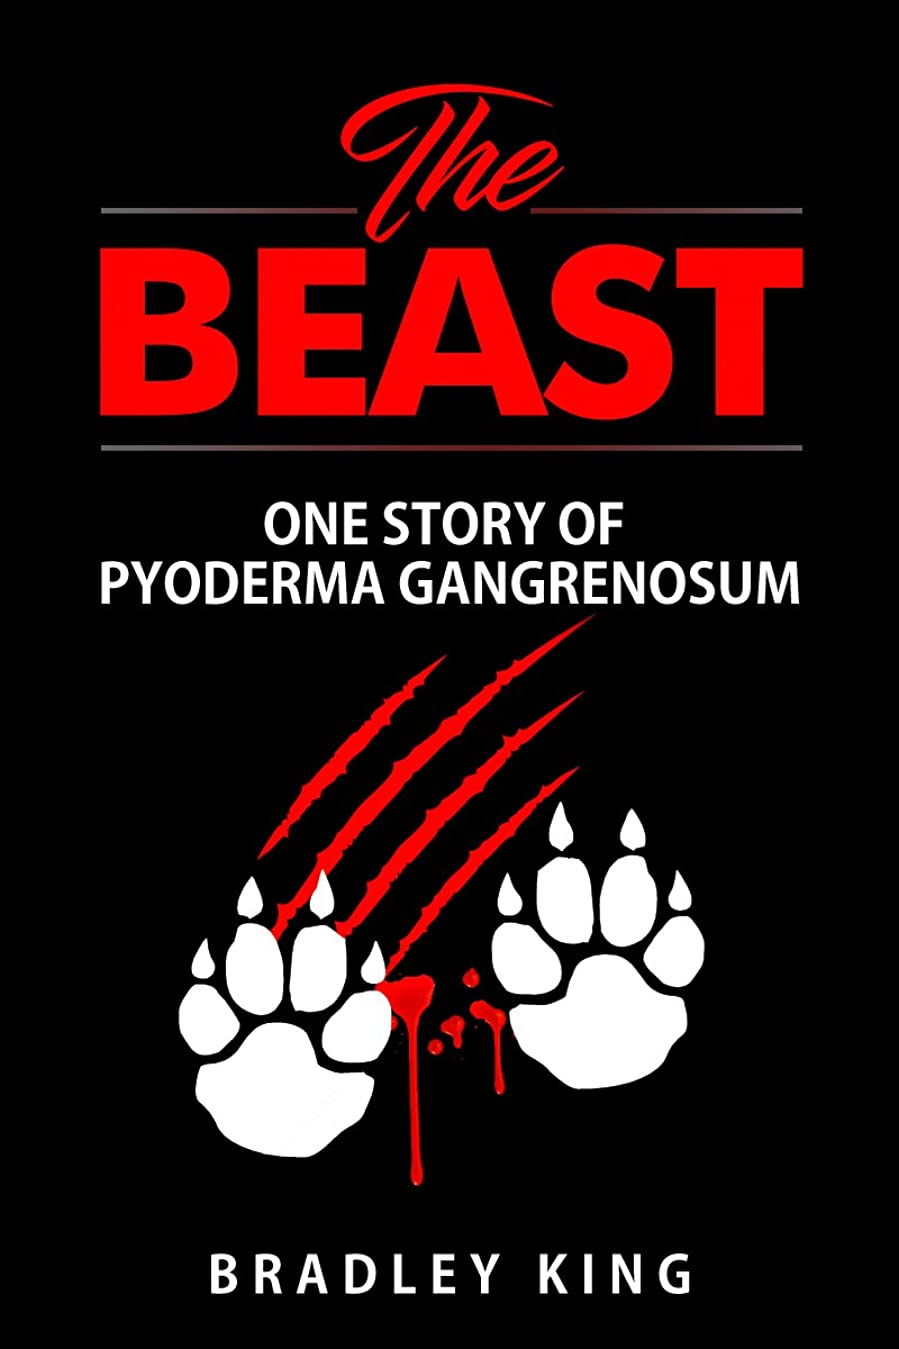 意気込みカウントリビングルームThe Beast: One Story of Pyoderma Gangrenosum (English Edition)